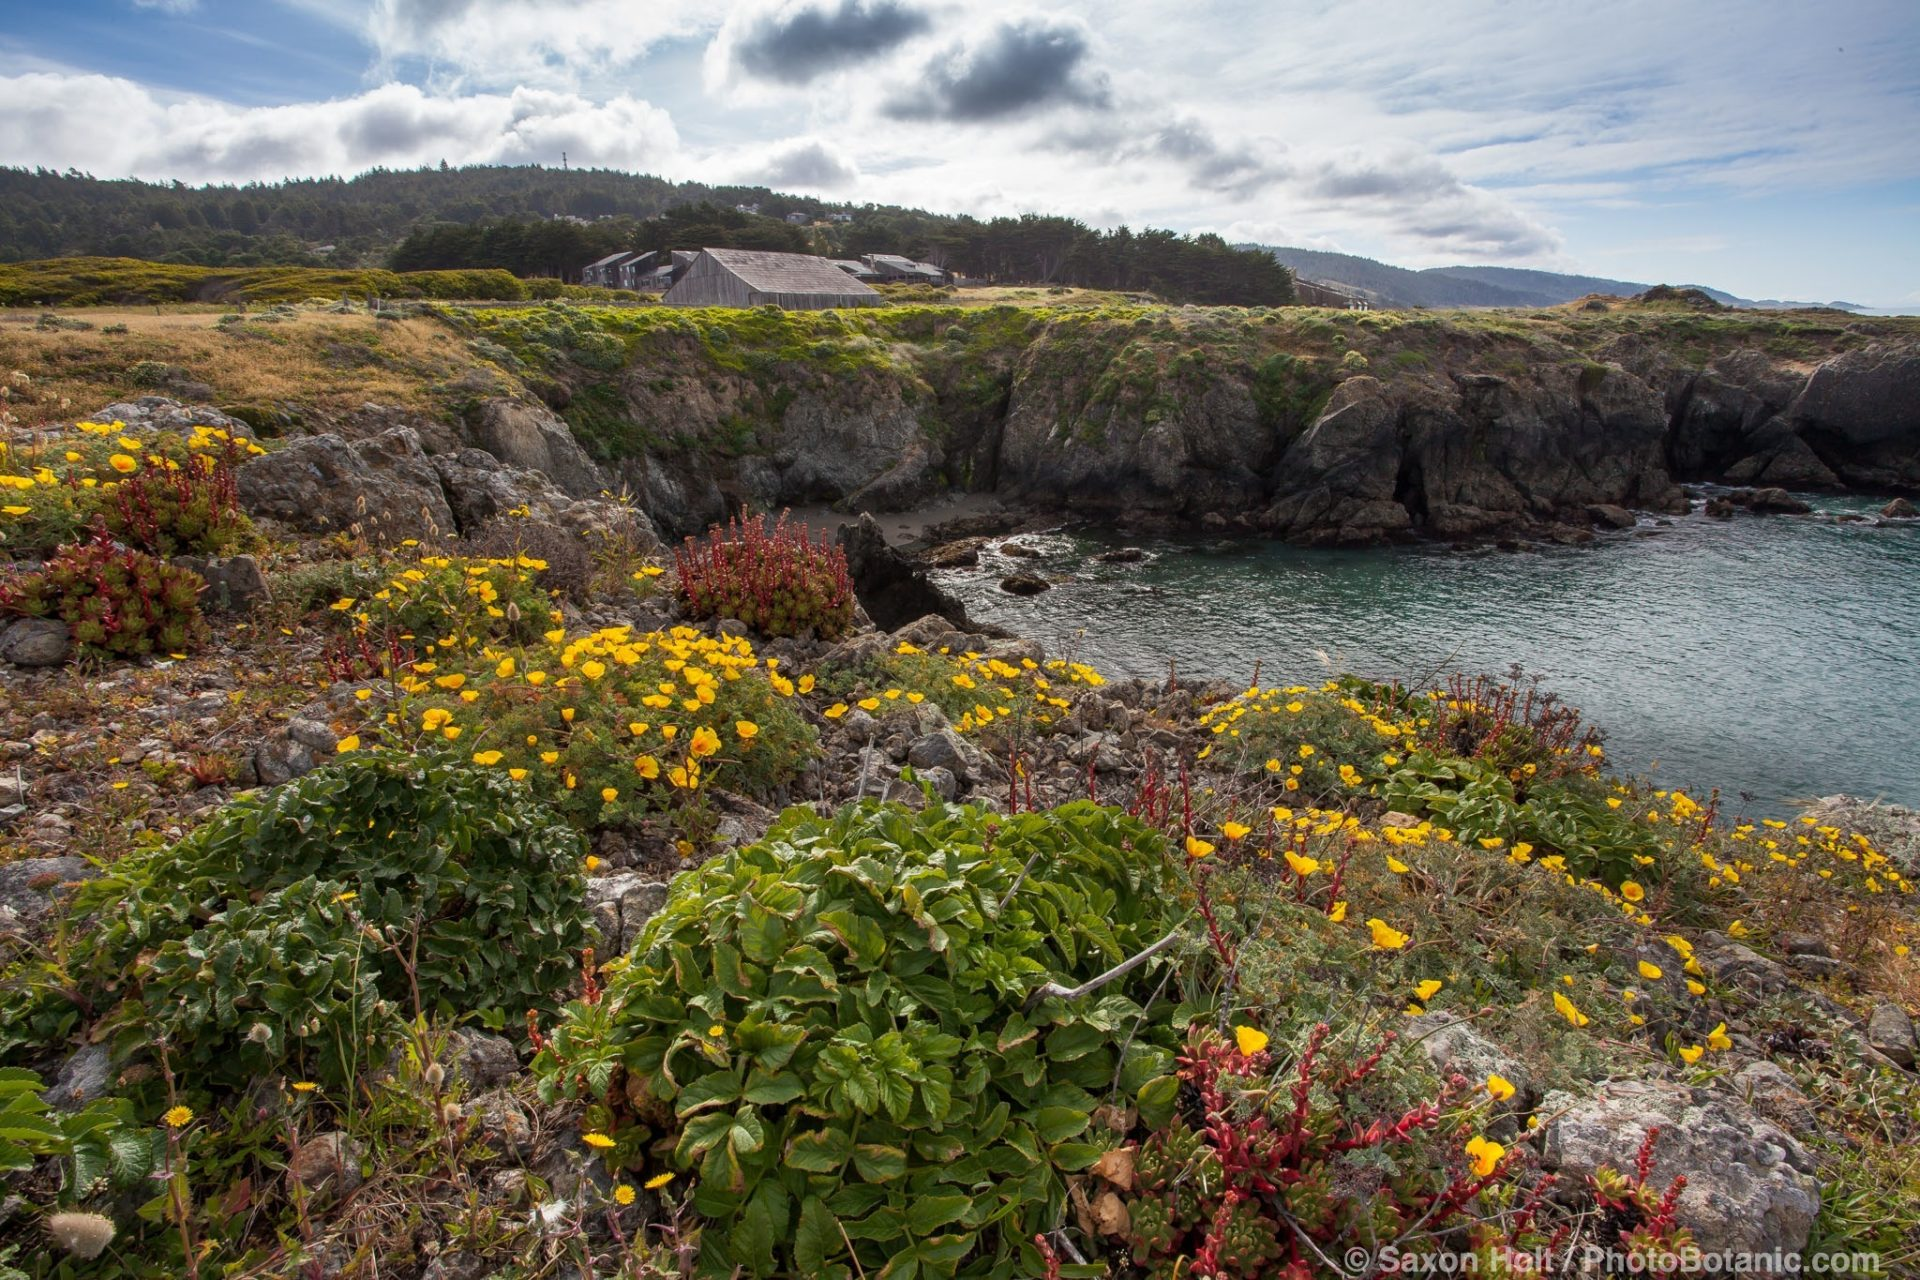 California native wildflowers on coastal bluff at Black Point - across from Sea Ranch Lodge and Bihler Point, The Sea Ranch